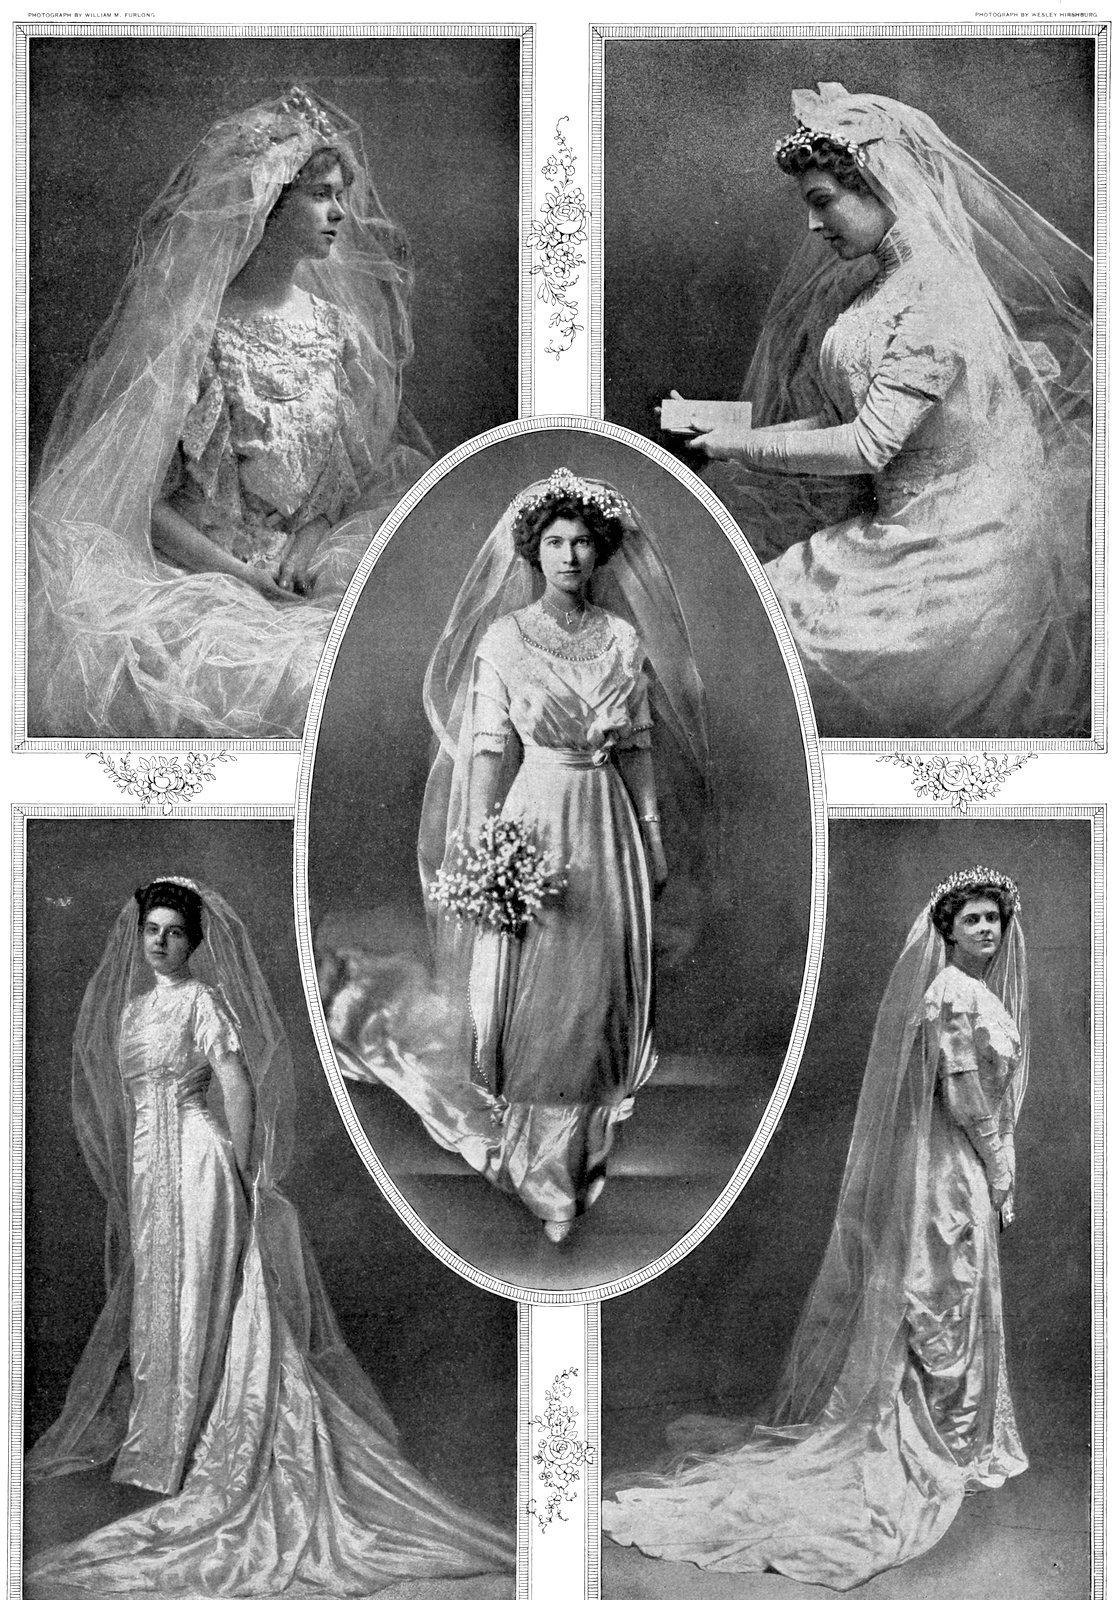 Antique bridal gown - Wedding fashions from 1911 (1)